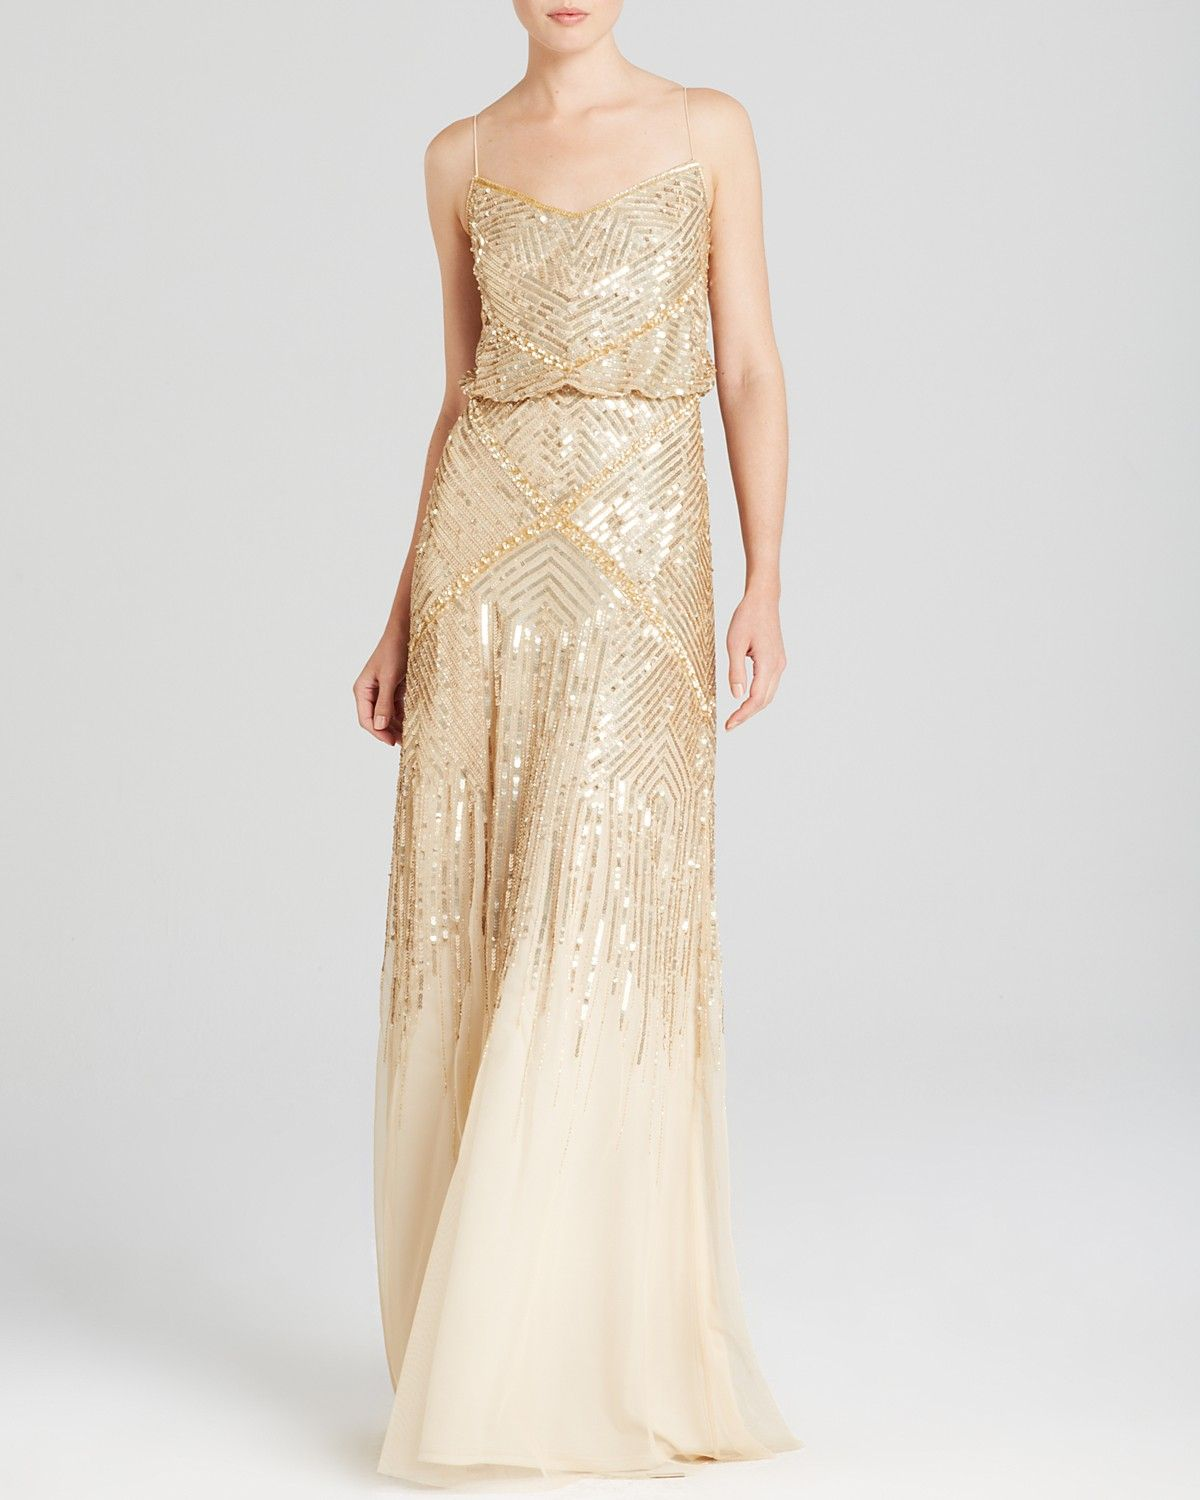 Adrianna papell sleeveless beaded blouson gown bloomingdales adrianna papell sleeveless beaded blouson gown bloomingdales exclusive bloomingdales ombrellifo Images